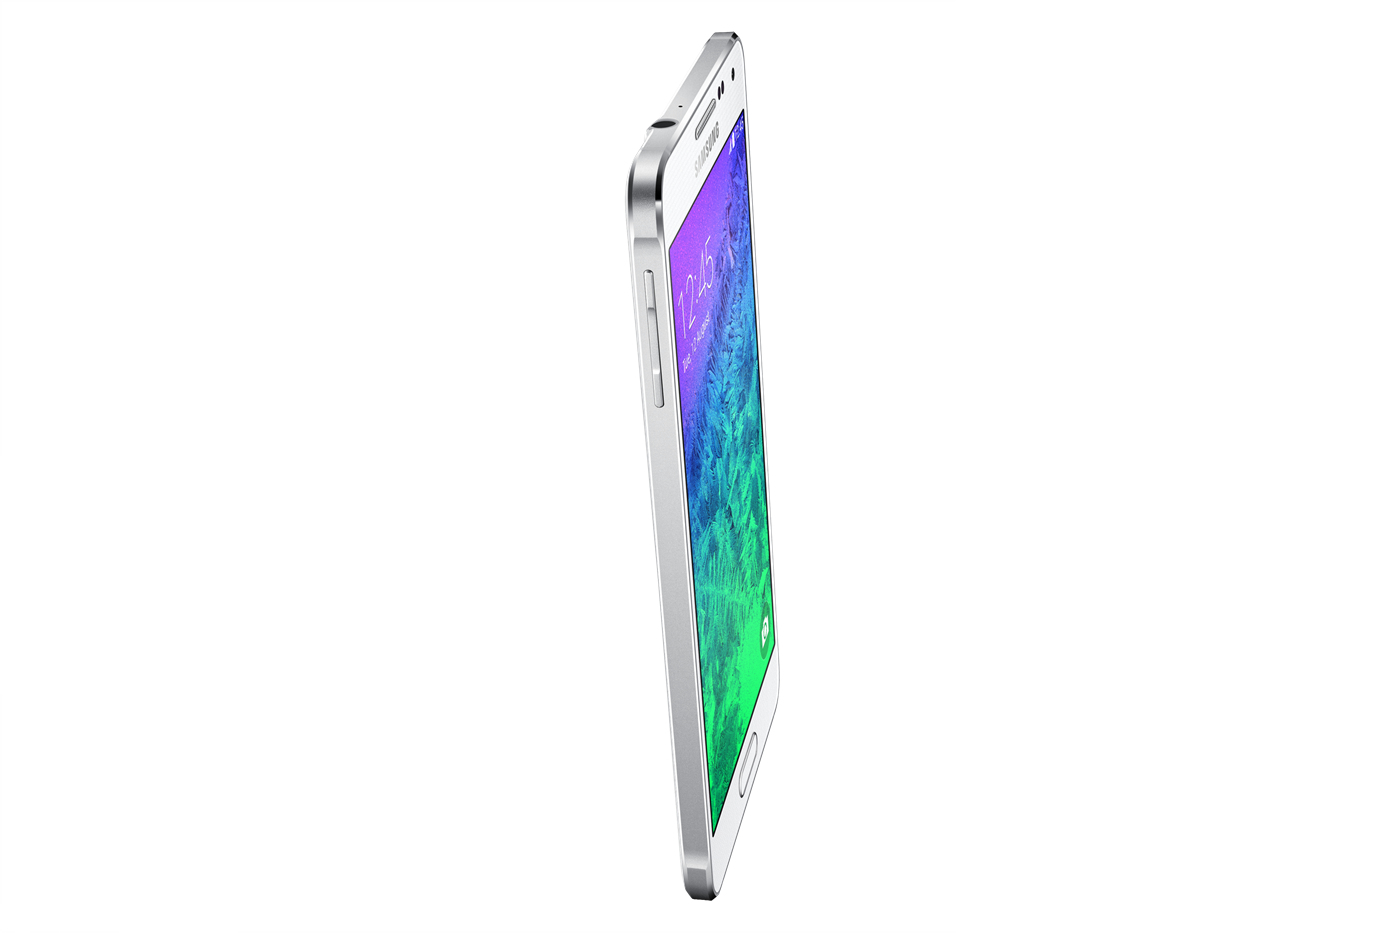 Samsung-Galaxy-Alpha-official-images (12)